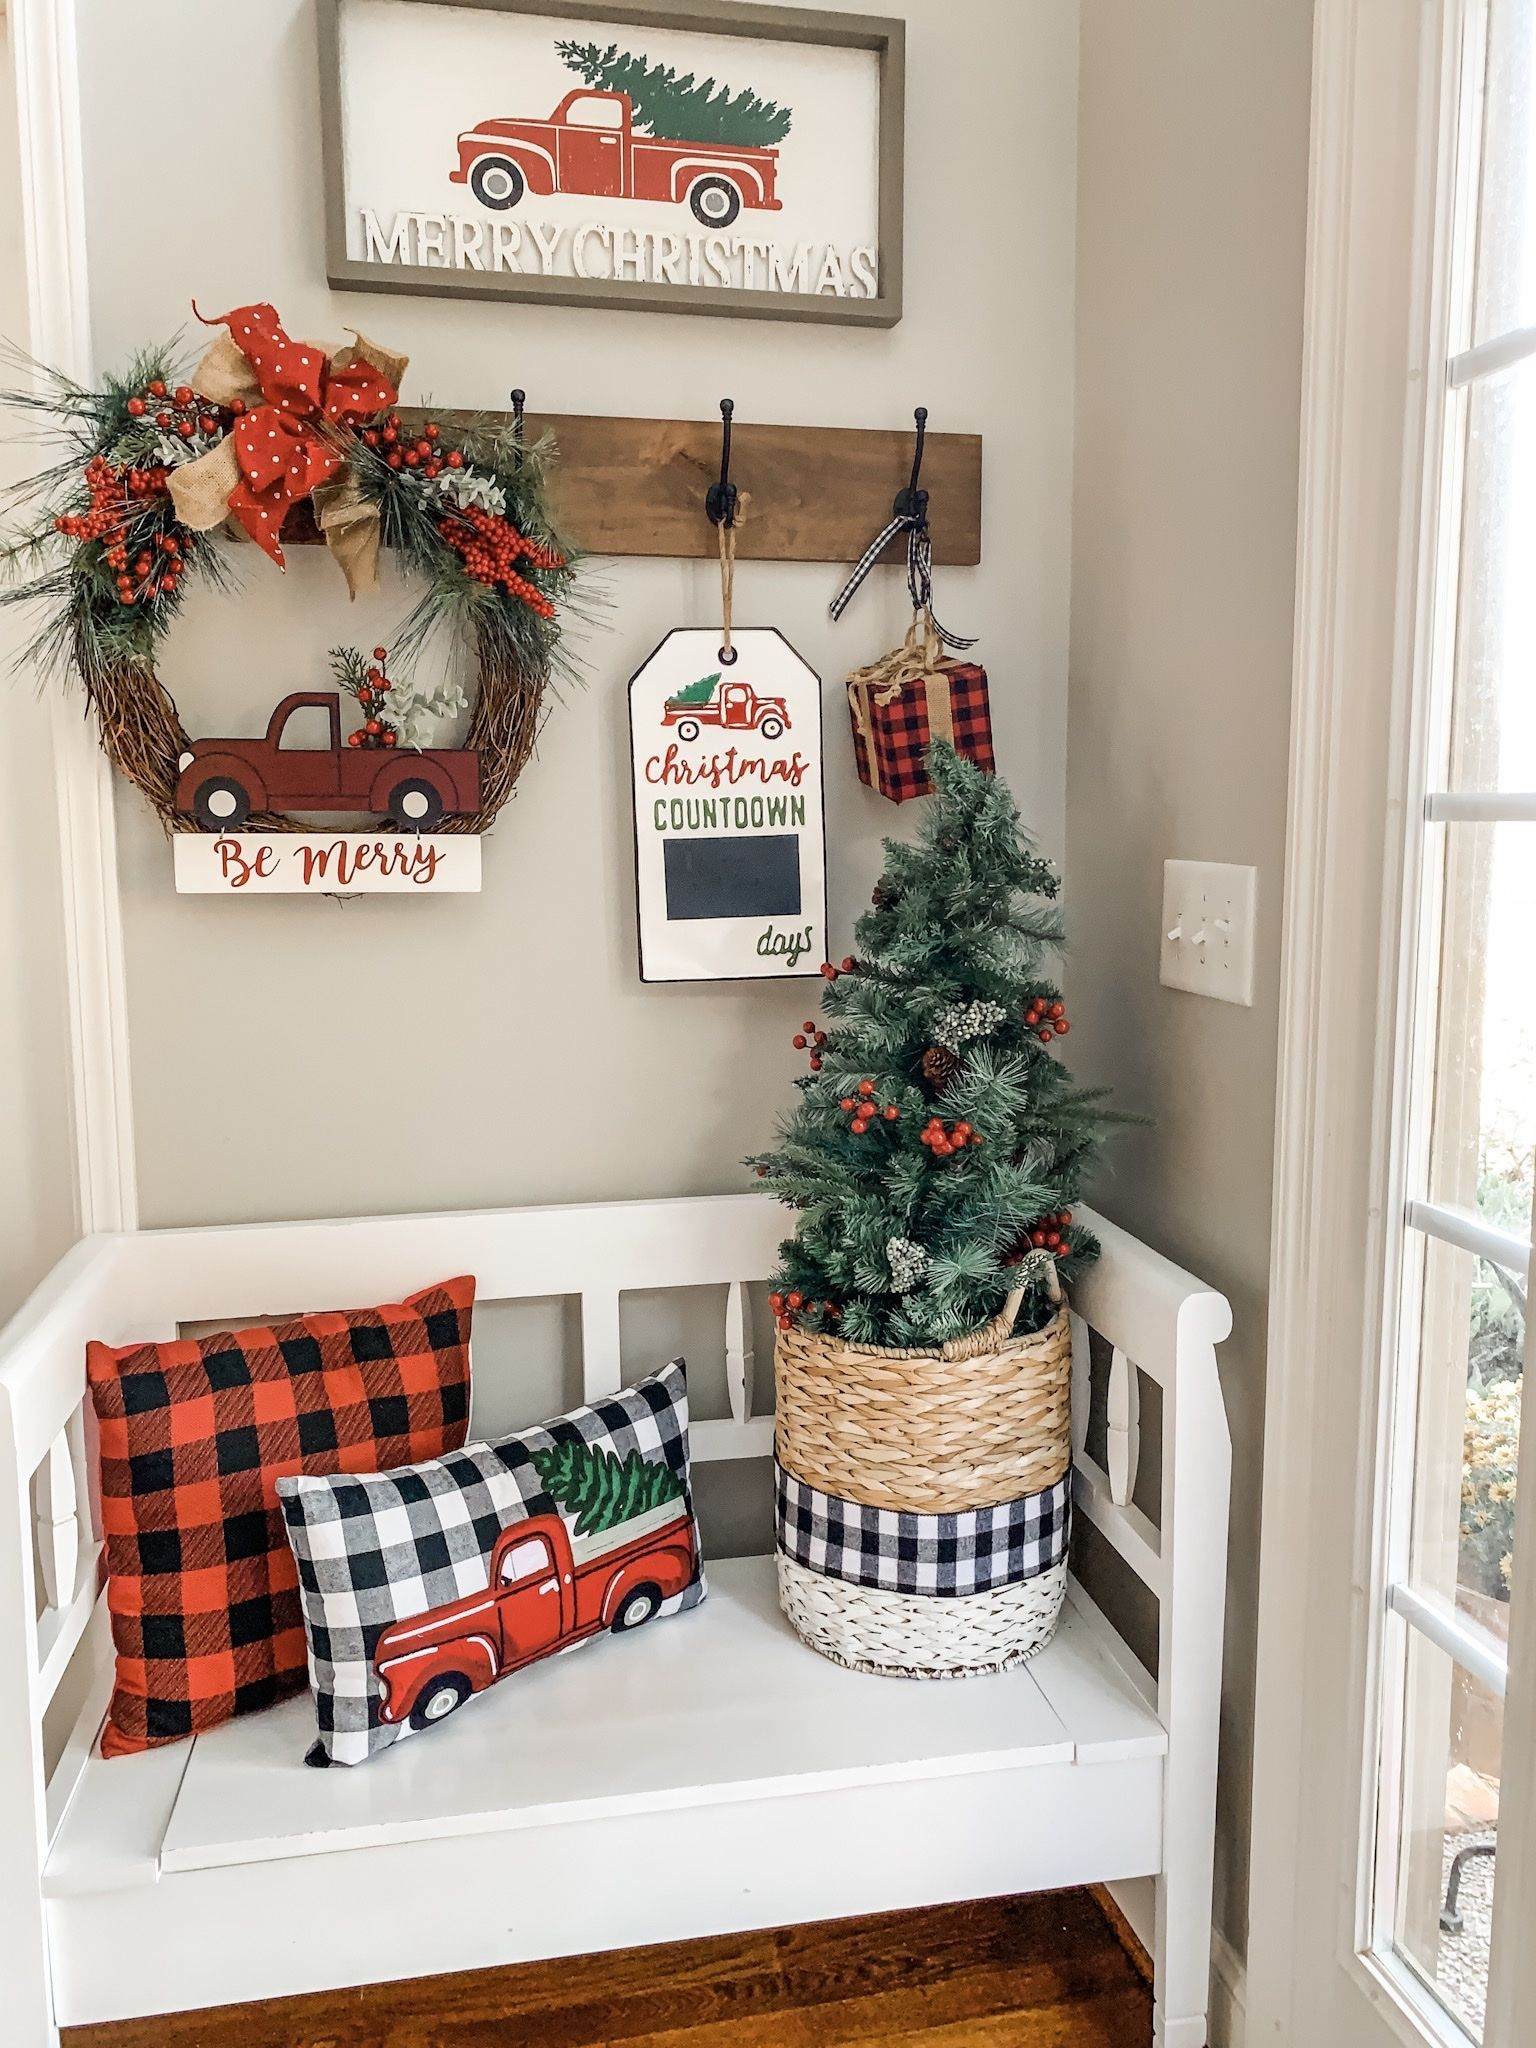 Christmas truck decor in my entry way! | Wilshire Collections #porchdecor #christmasdecor #christmasoutdoordecor #southernporches